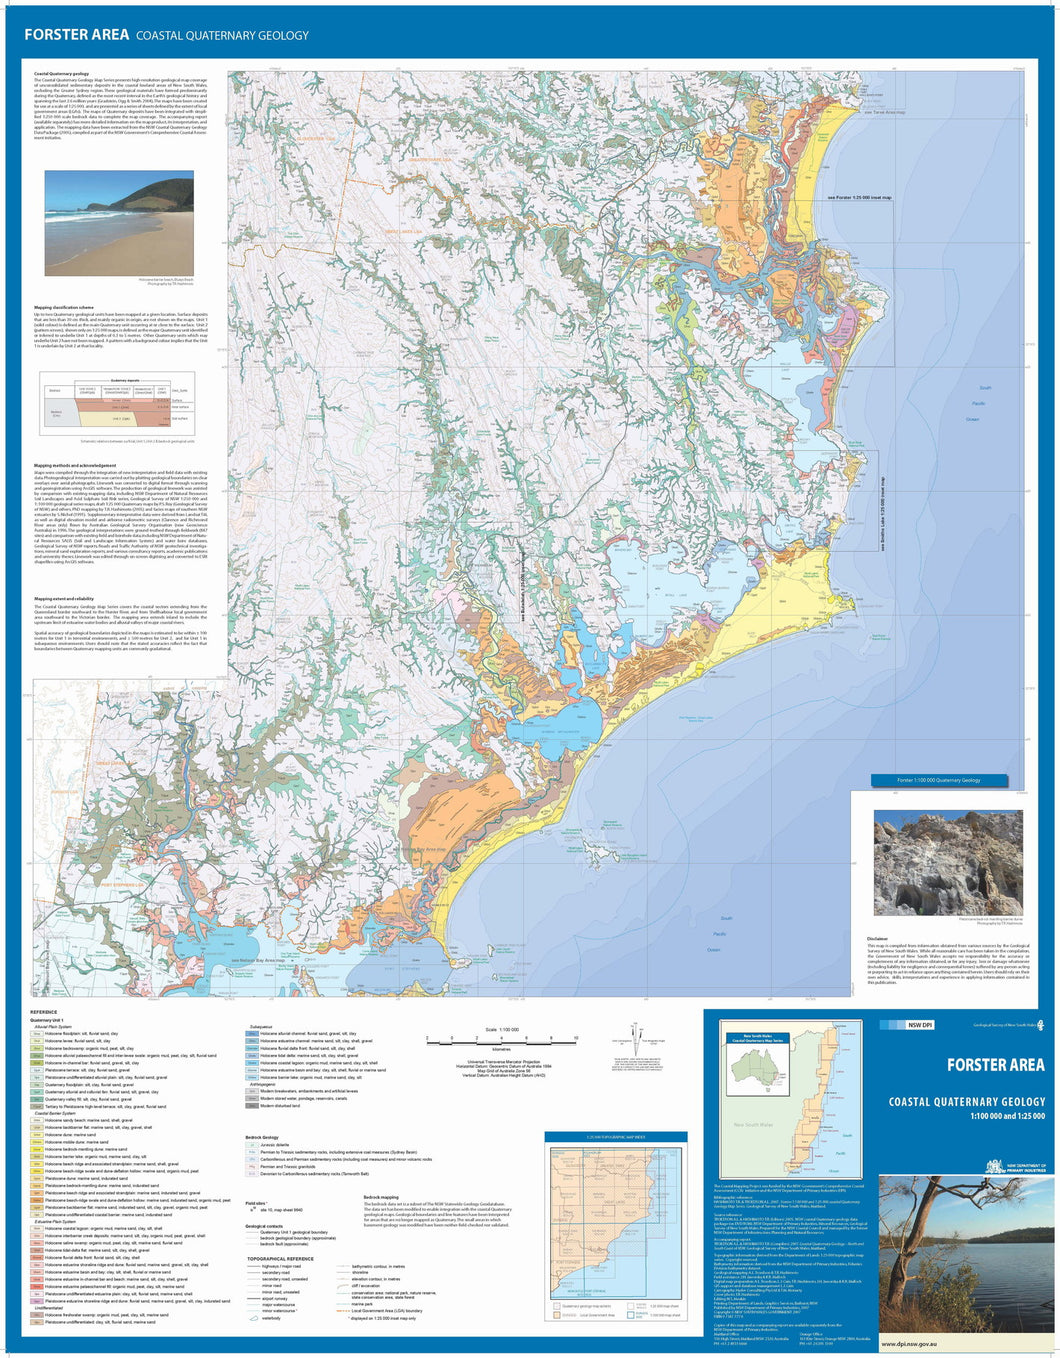 Image of Forster Area Coastal Quaternary Geology map